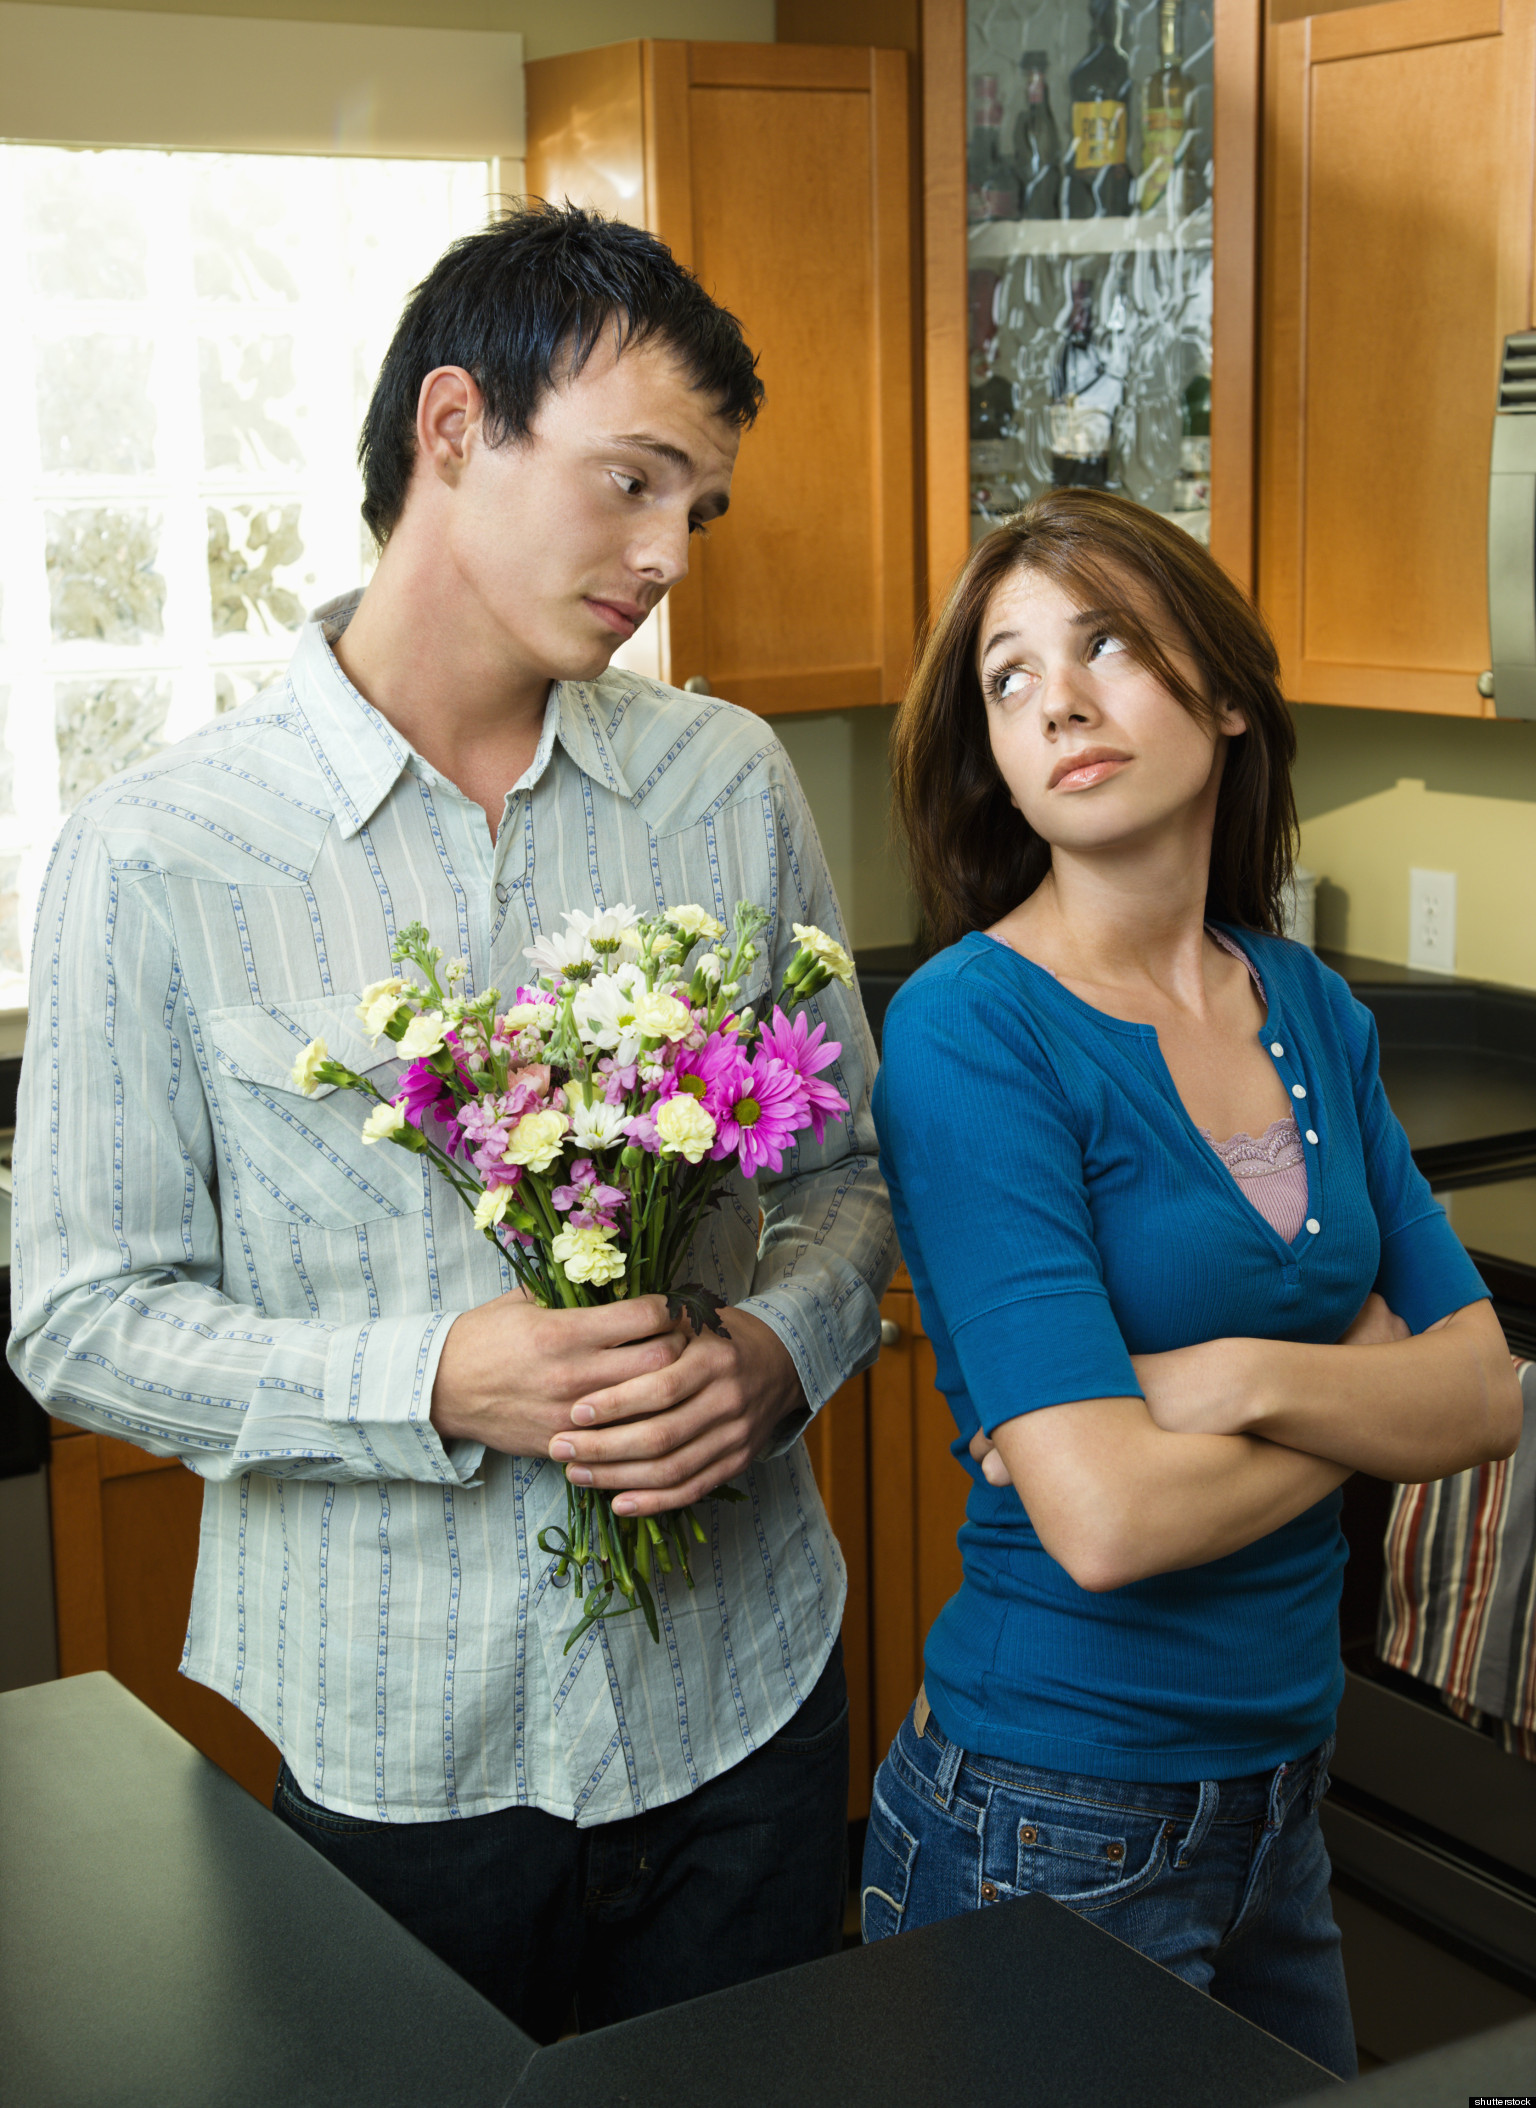 Tips To Strengthen Your Bond And Be A Truly Happy Couple